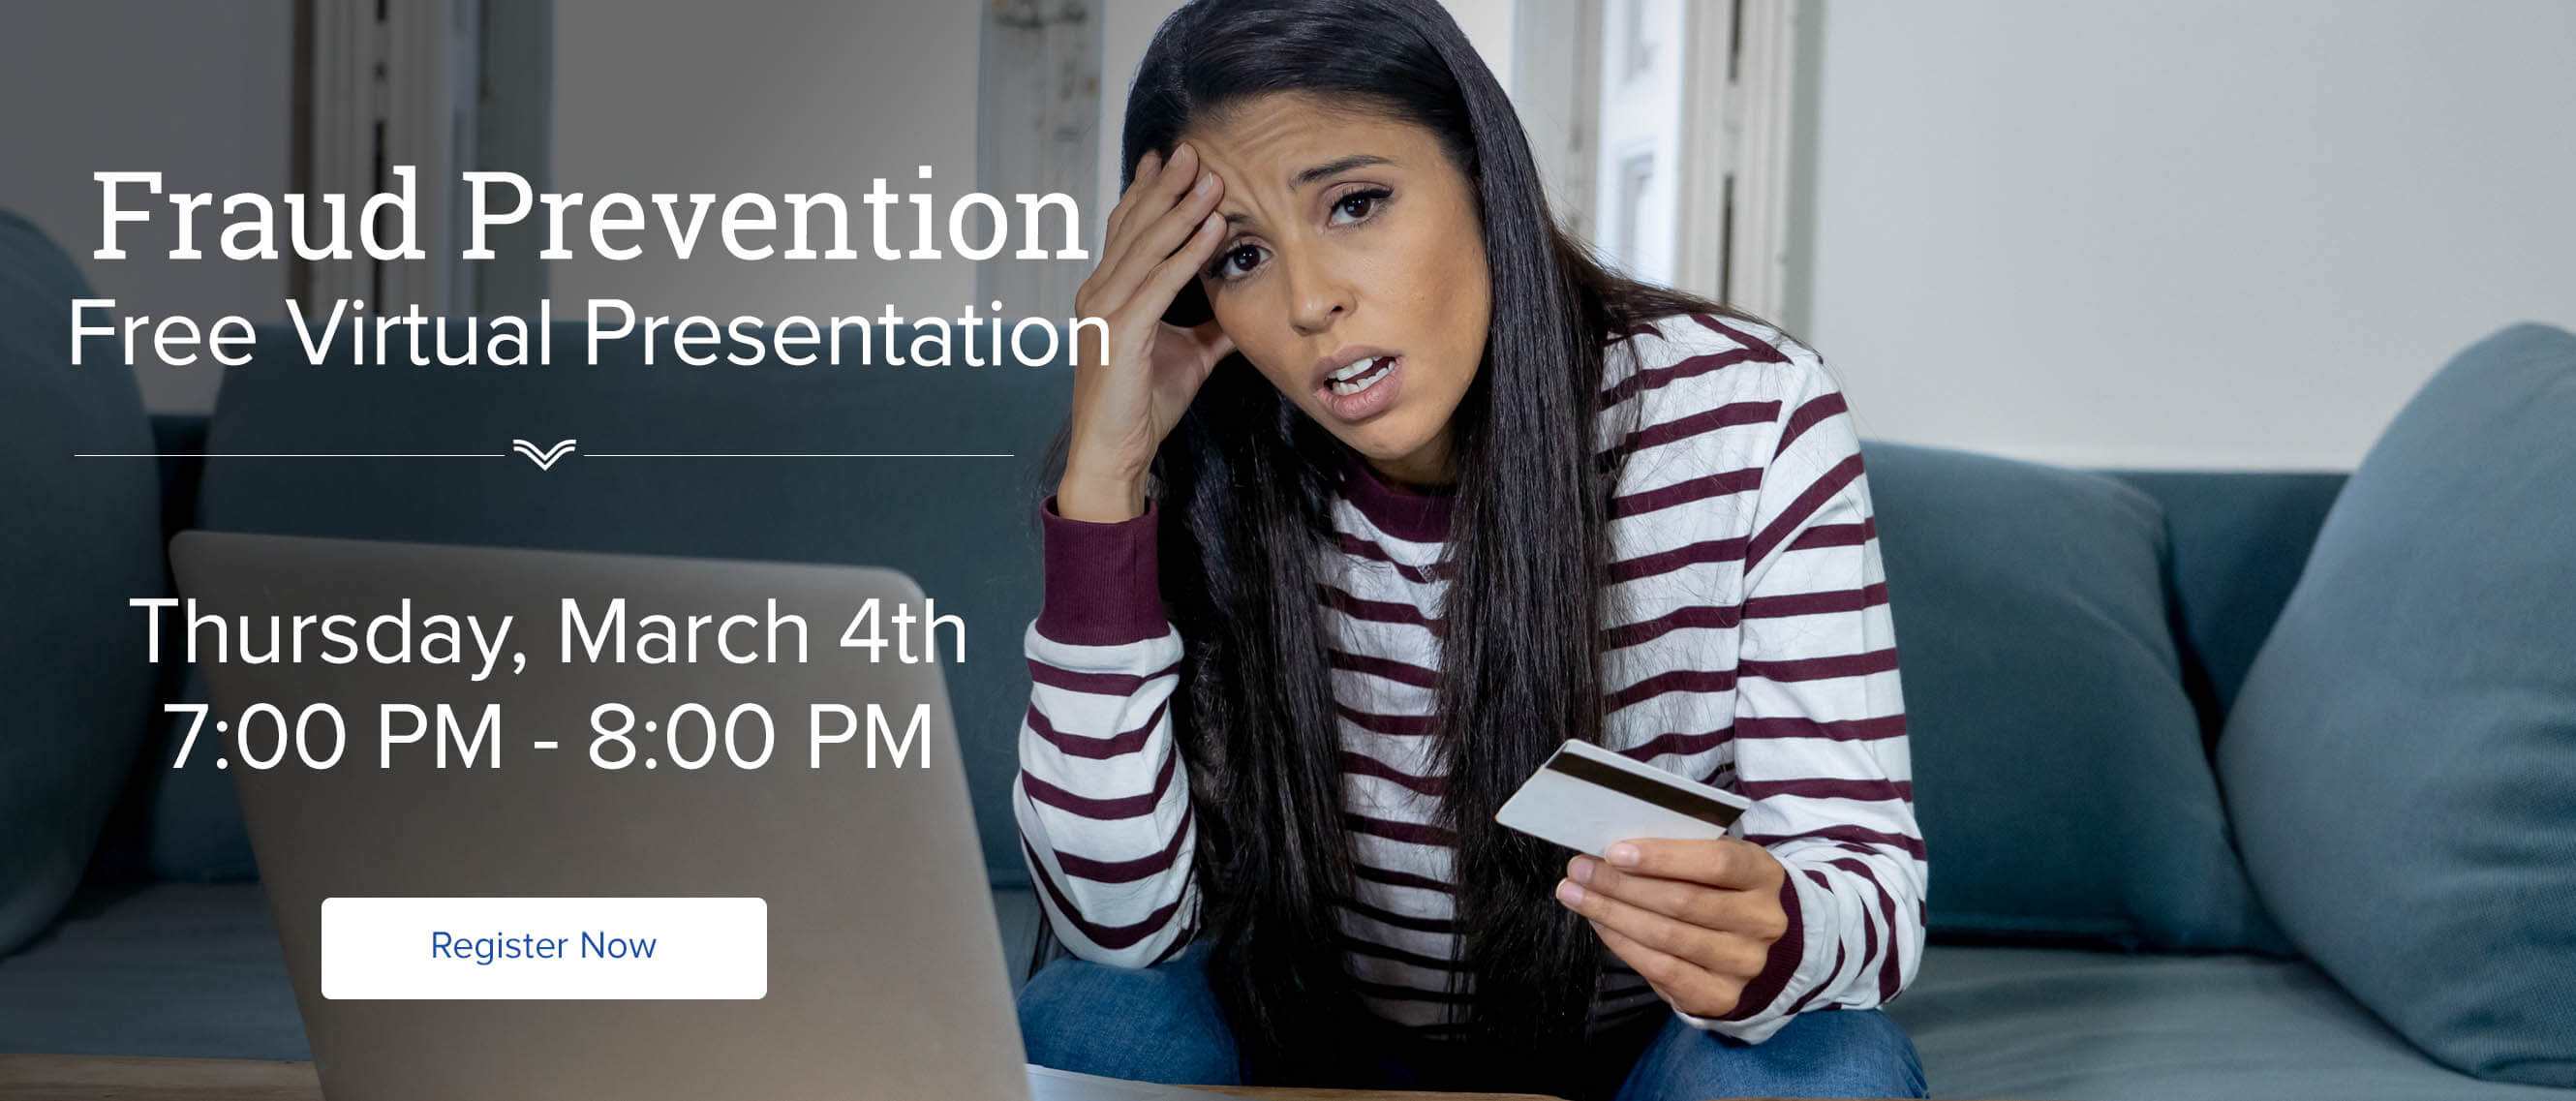 Fraud Prevention Free Virtual Presentation Thursday March 4th, 7:00PM - 8:00PM